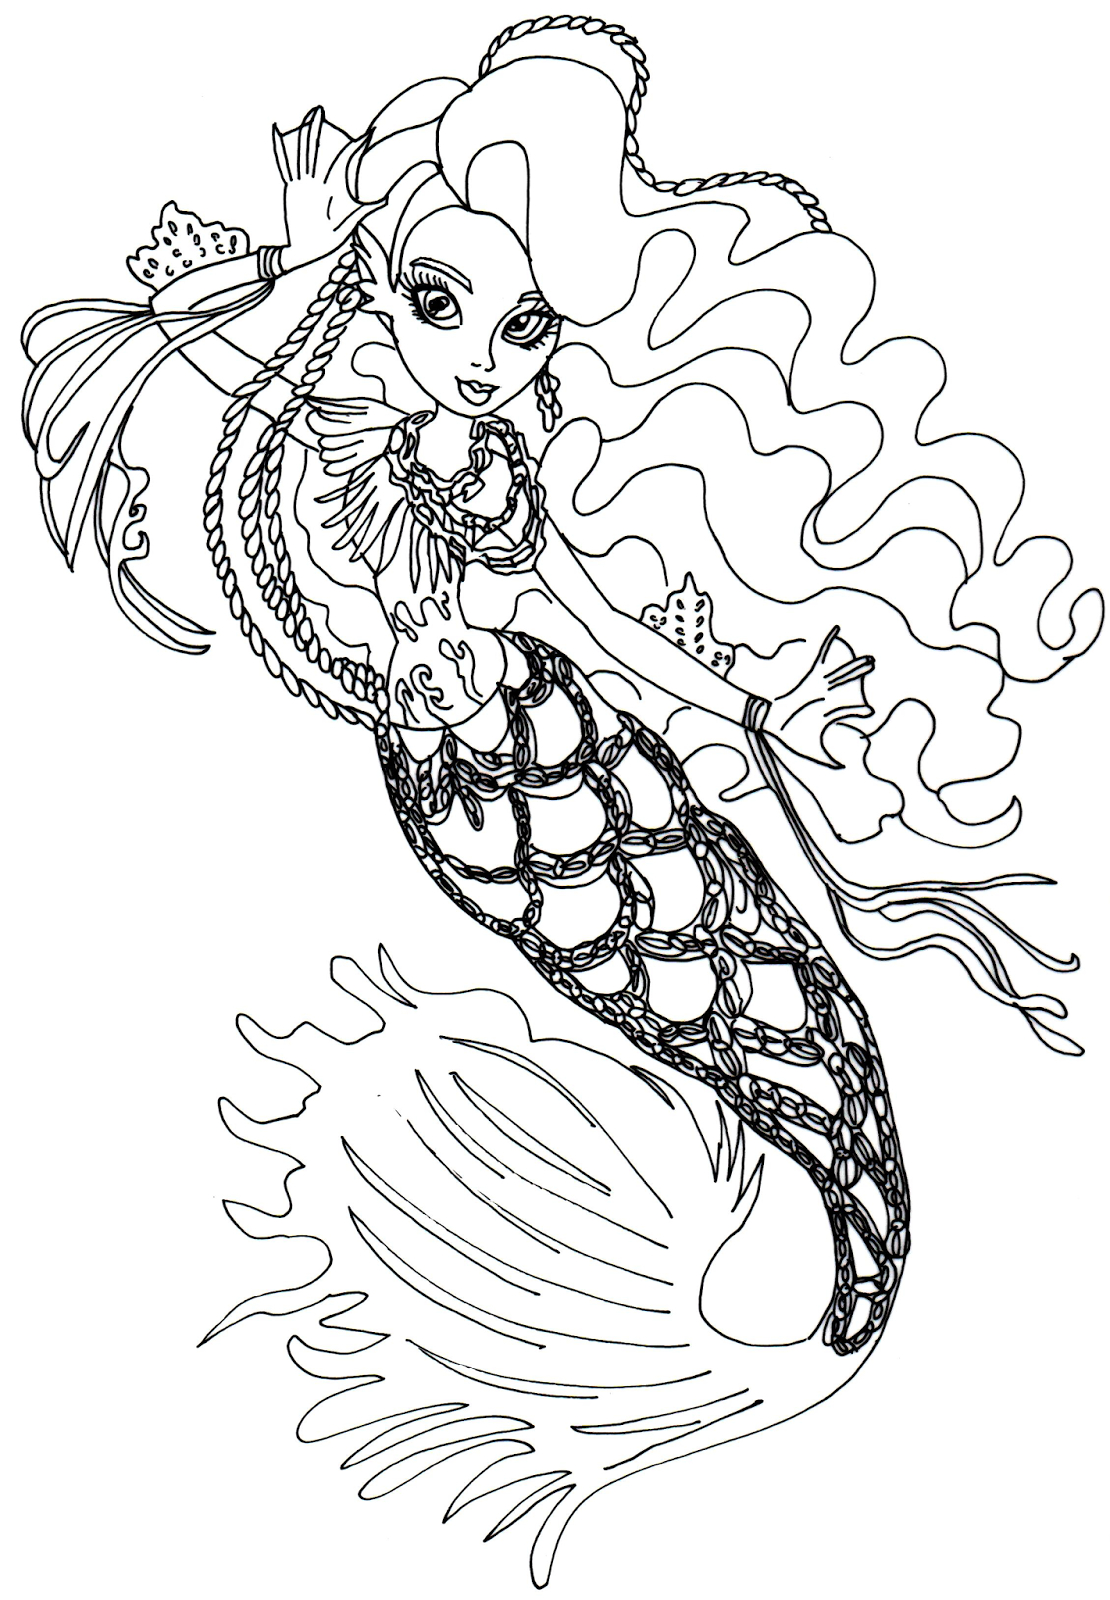 Monster High Coloring Pages Monster High Coloring Page All Collection Of Monster High Baby Coloring Pages 012 to Coloring Pages Collection